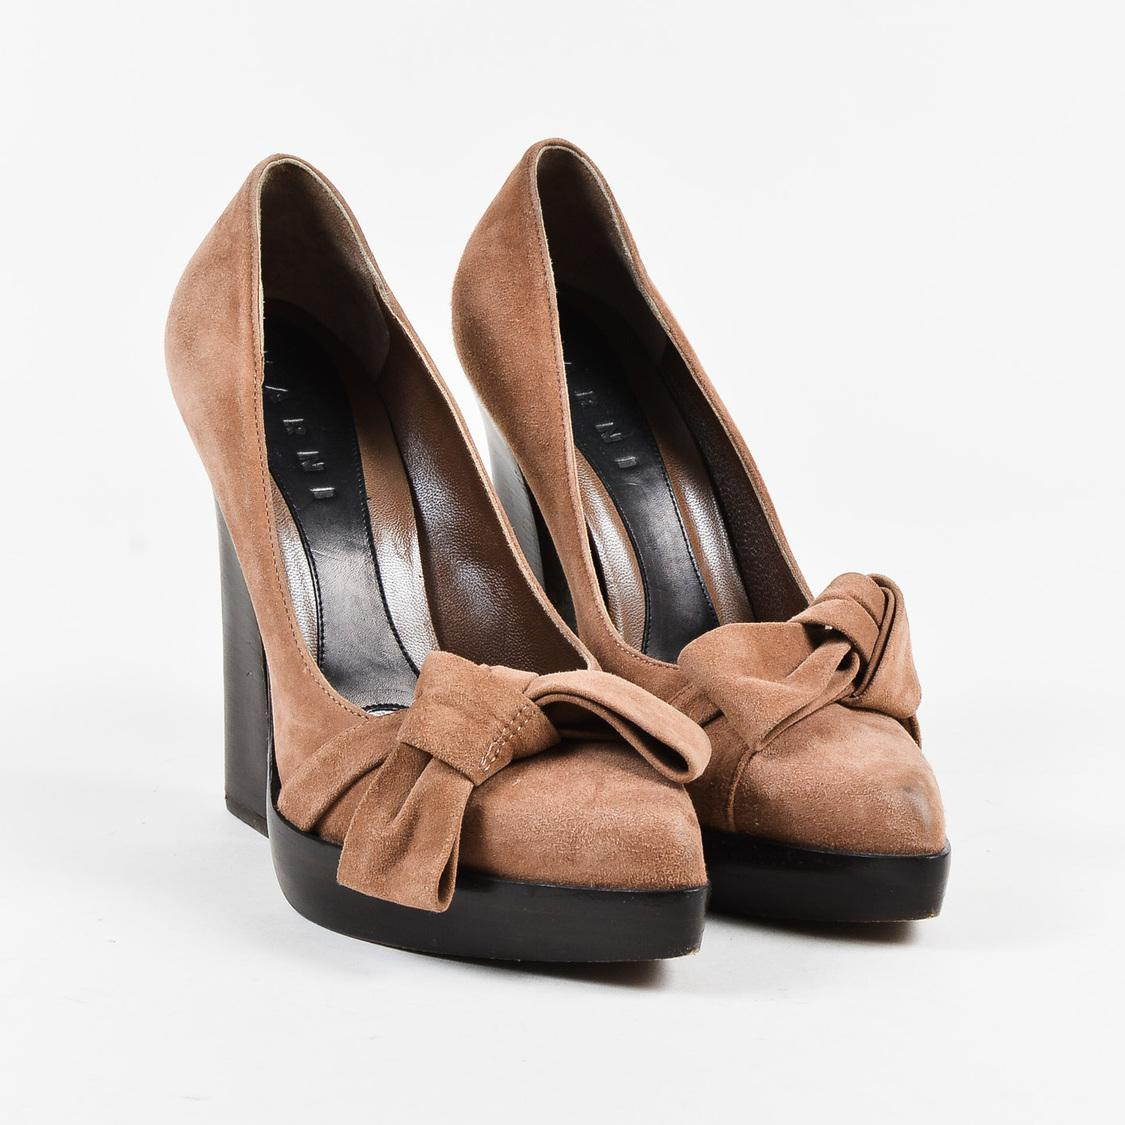 extremely cheap price classic online Marni Bow Suede pumps clearance get to buy 4ms2O1D